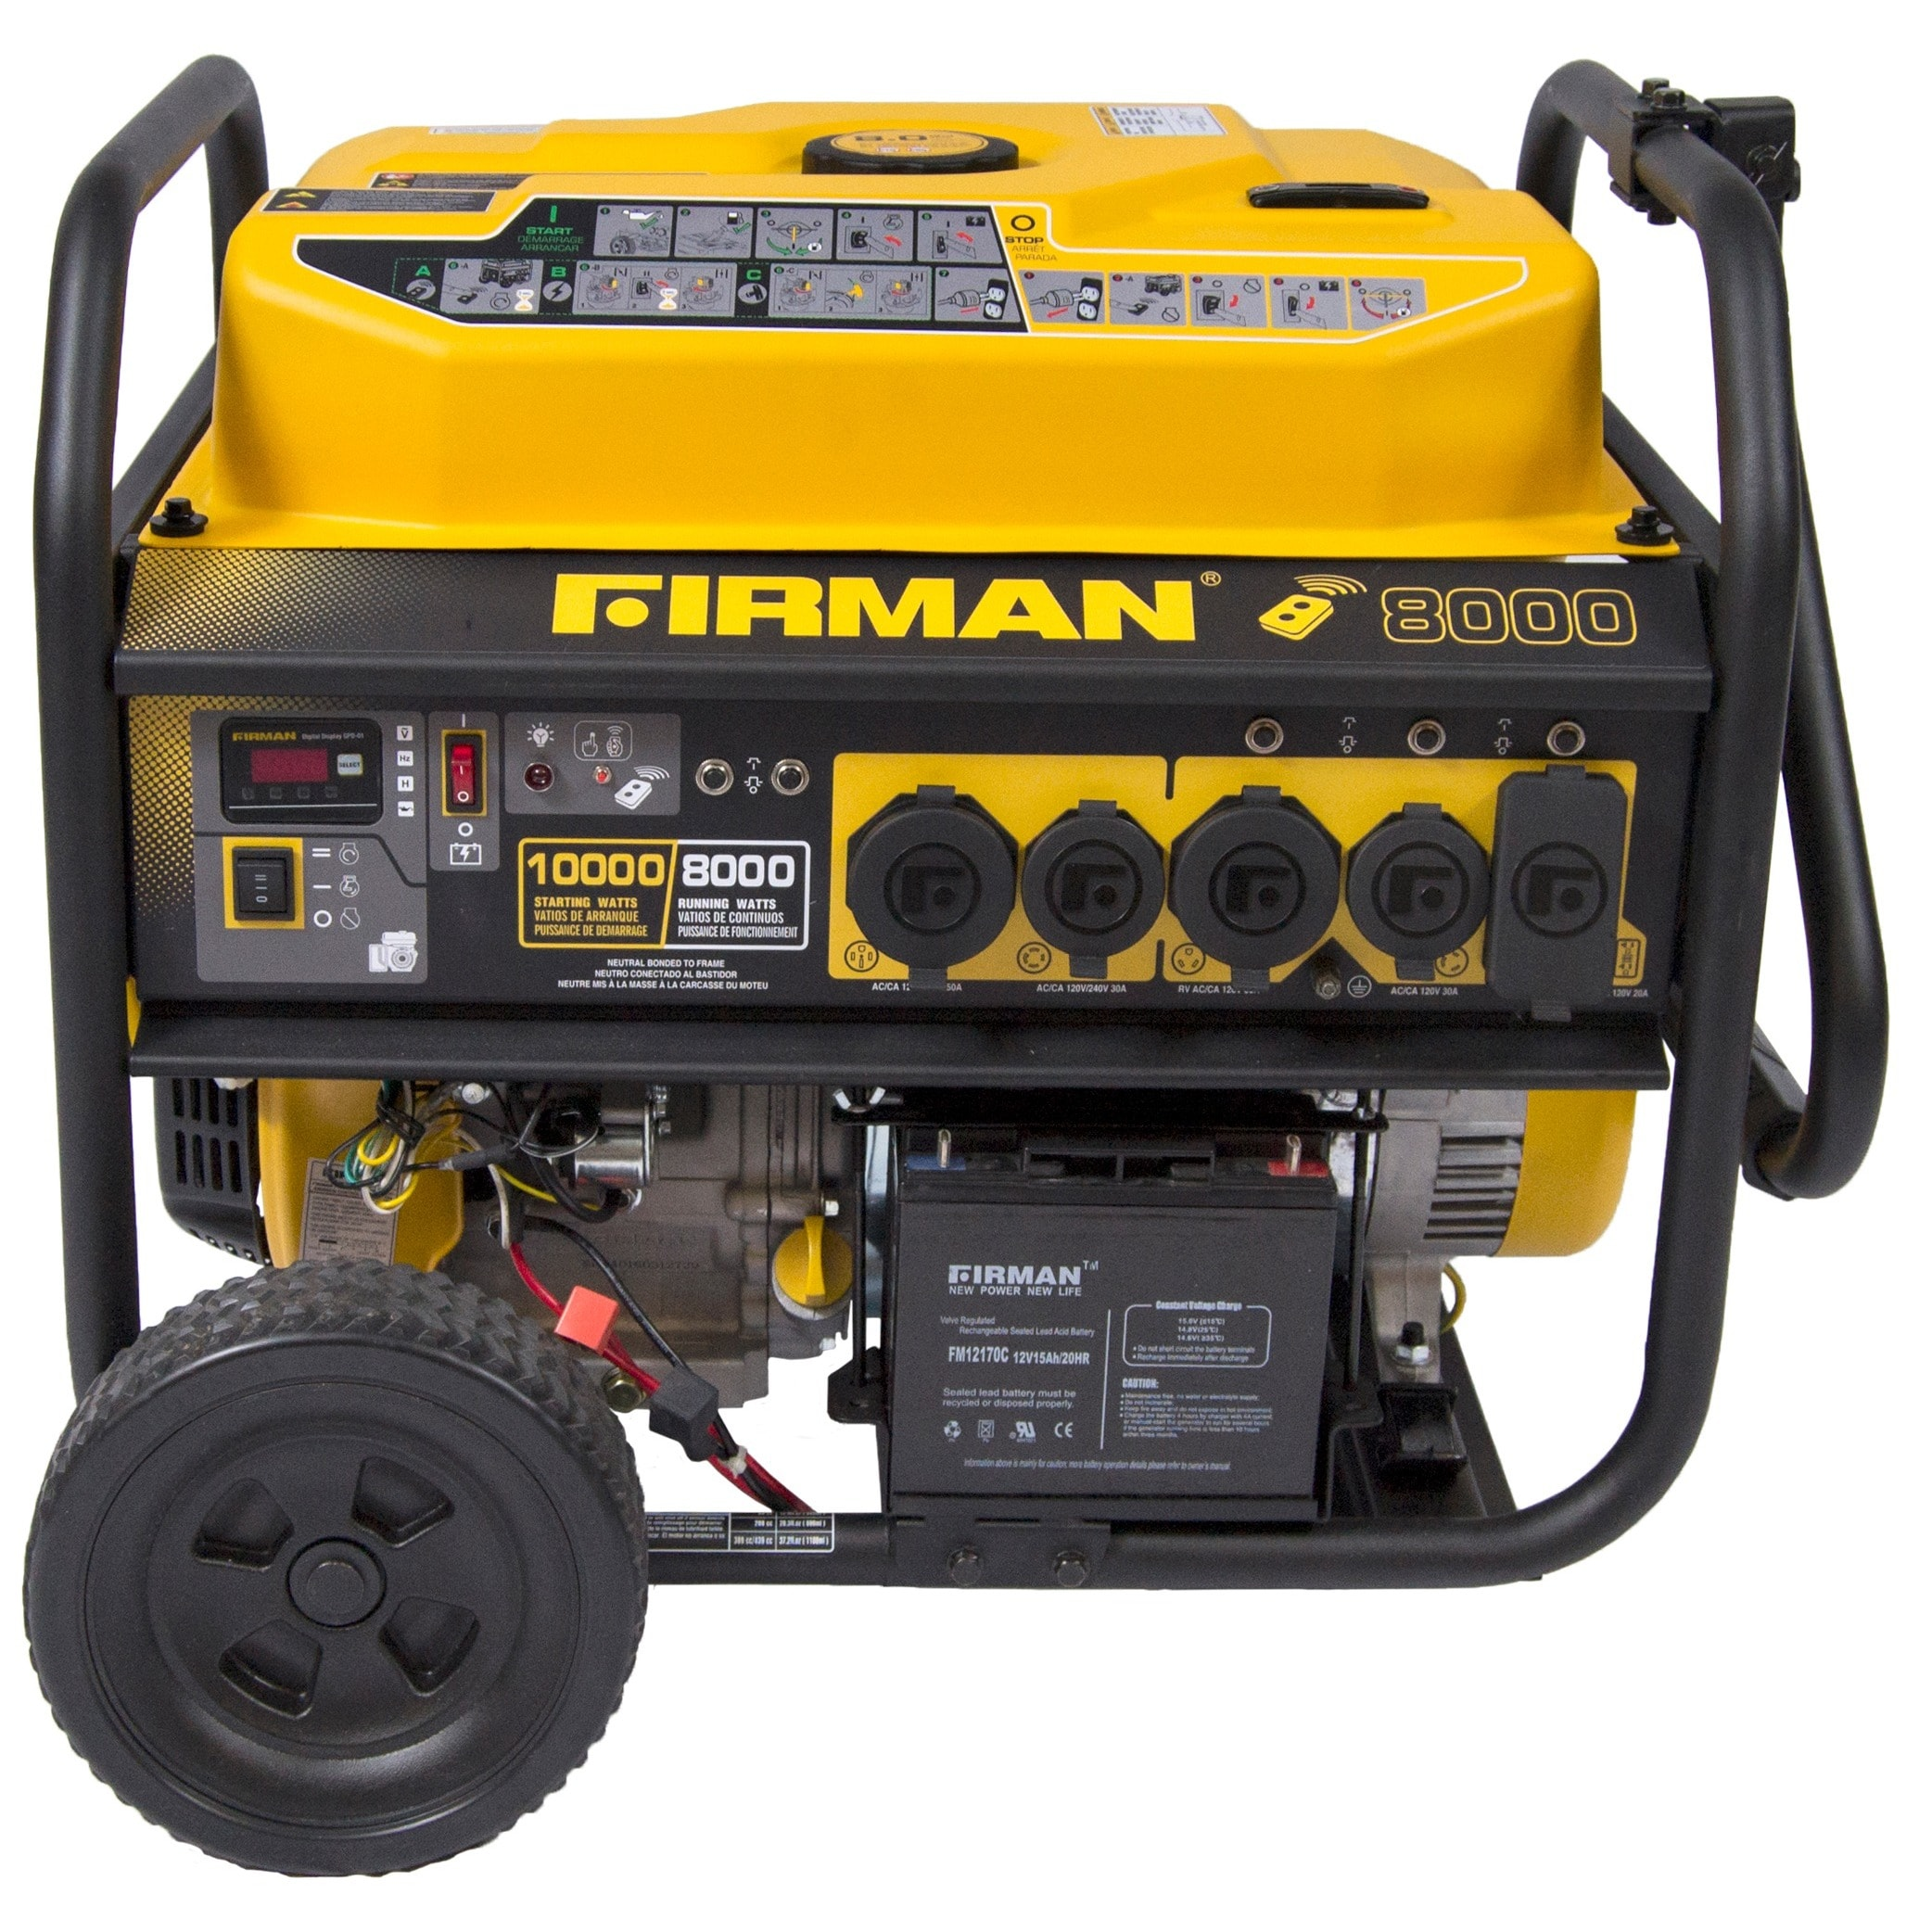 Firman P08003 Portable Generator 8,000   10,000 Watt with Remote Start & Wheel Kit by Sumec